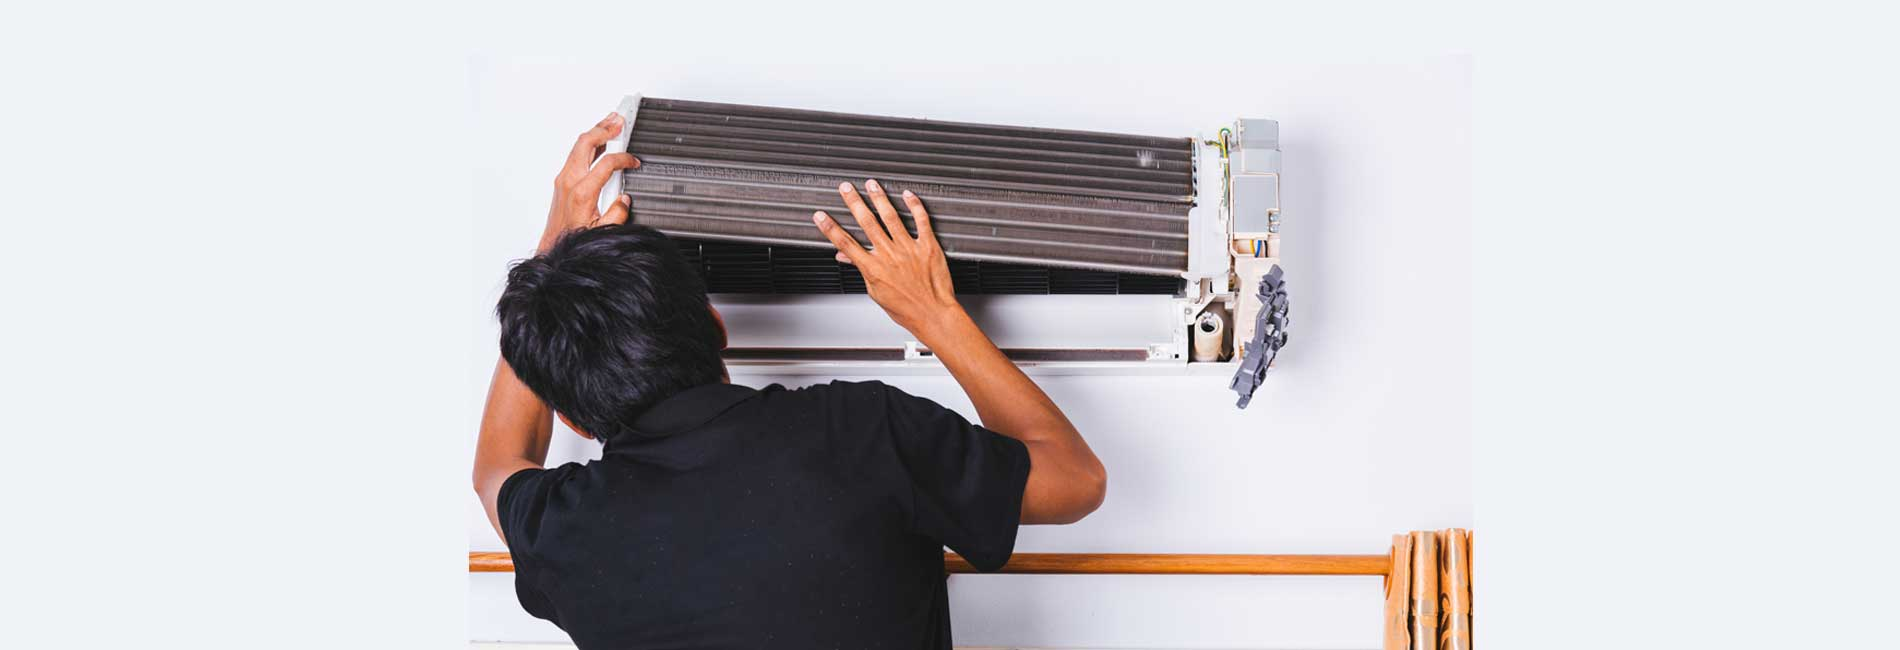 AC Uninstallation Charges in Chennai